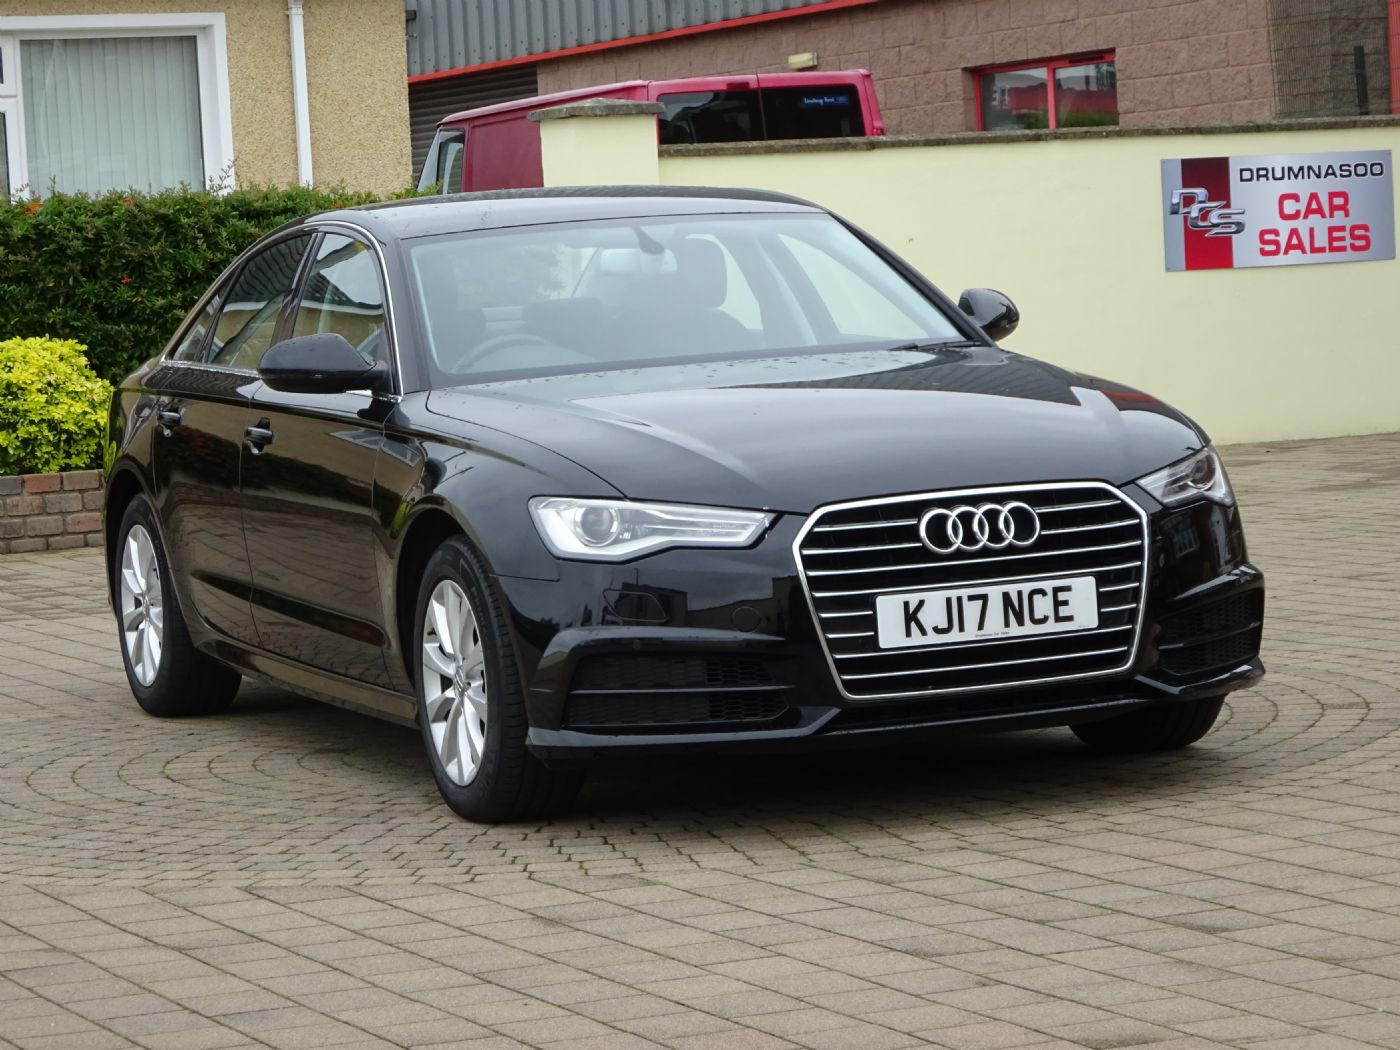 Audi A6 SE Executive 2.0 TDI Ultra  Auto, Heated leather seats